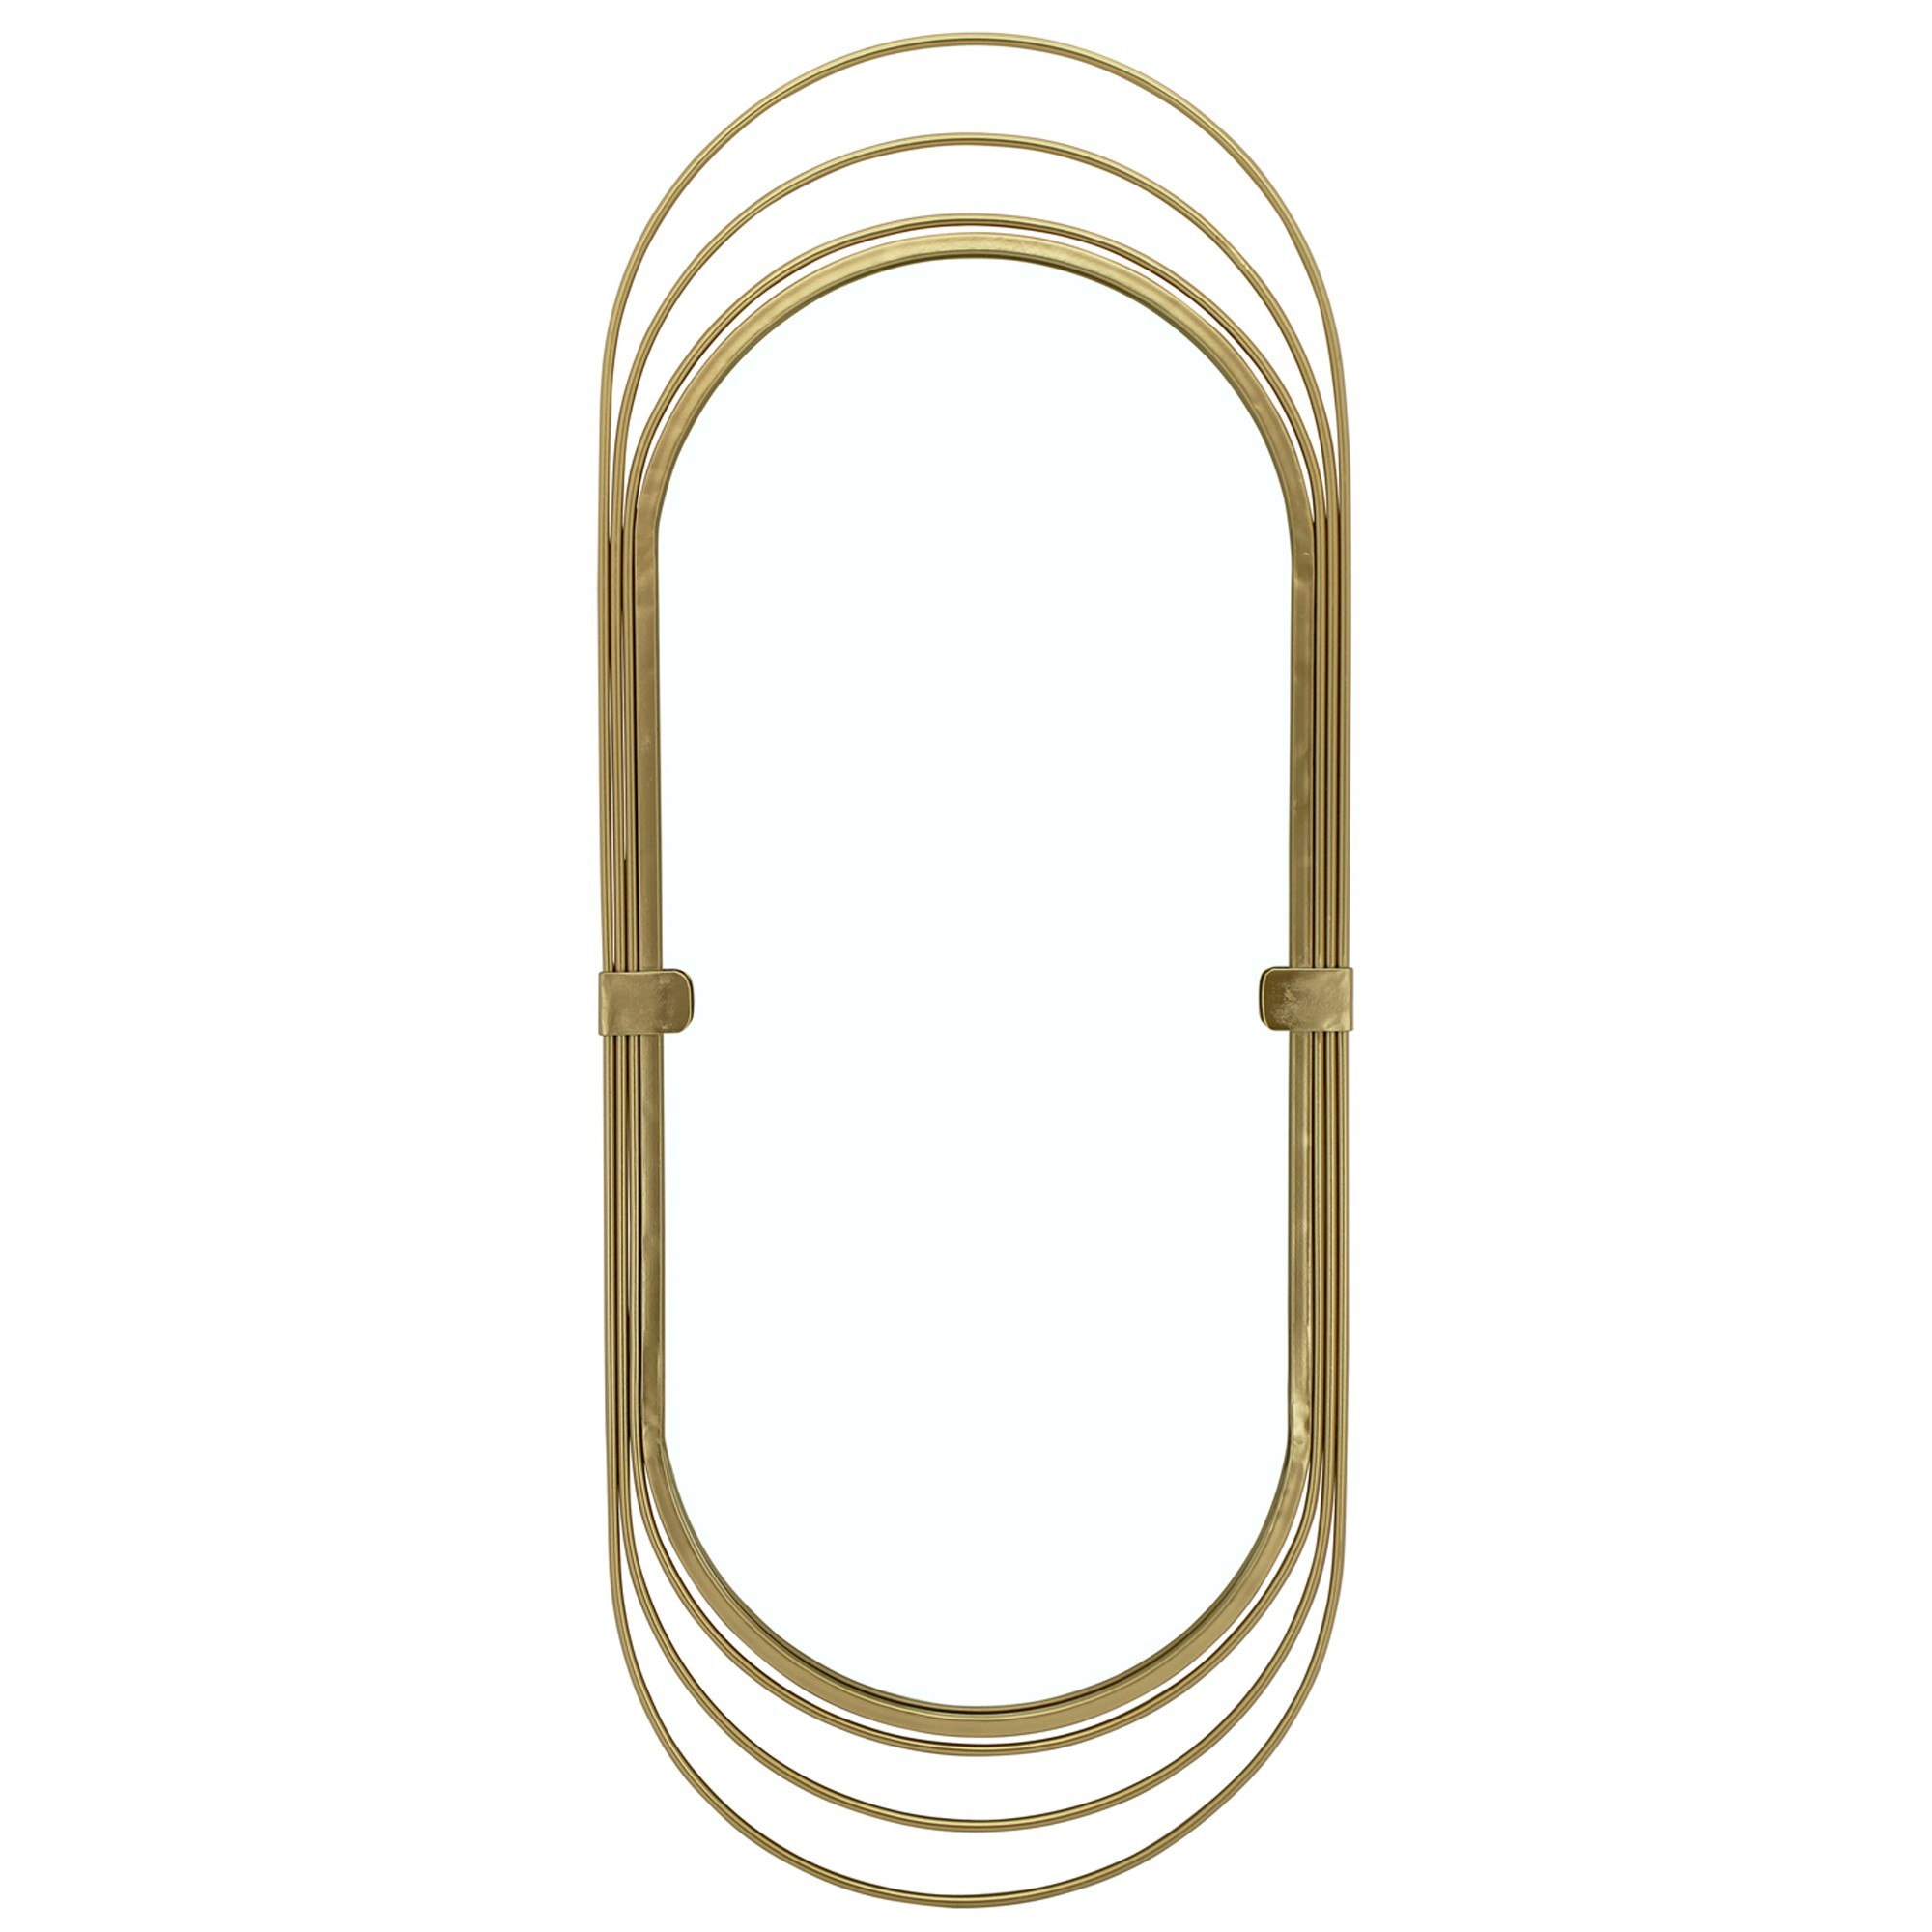 Abell Metal Frame Oval Wall Mirror, 91cm